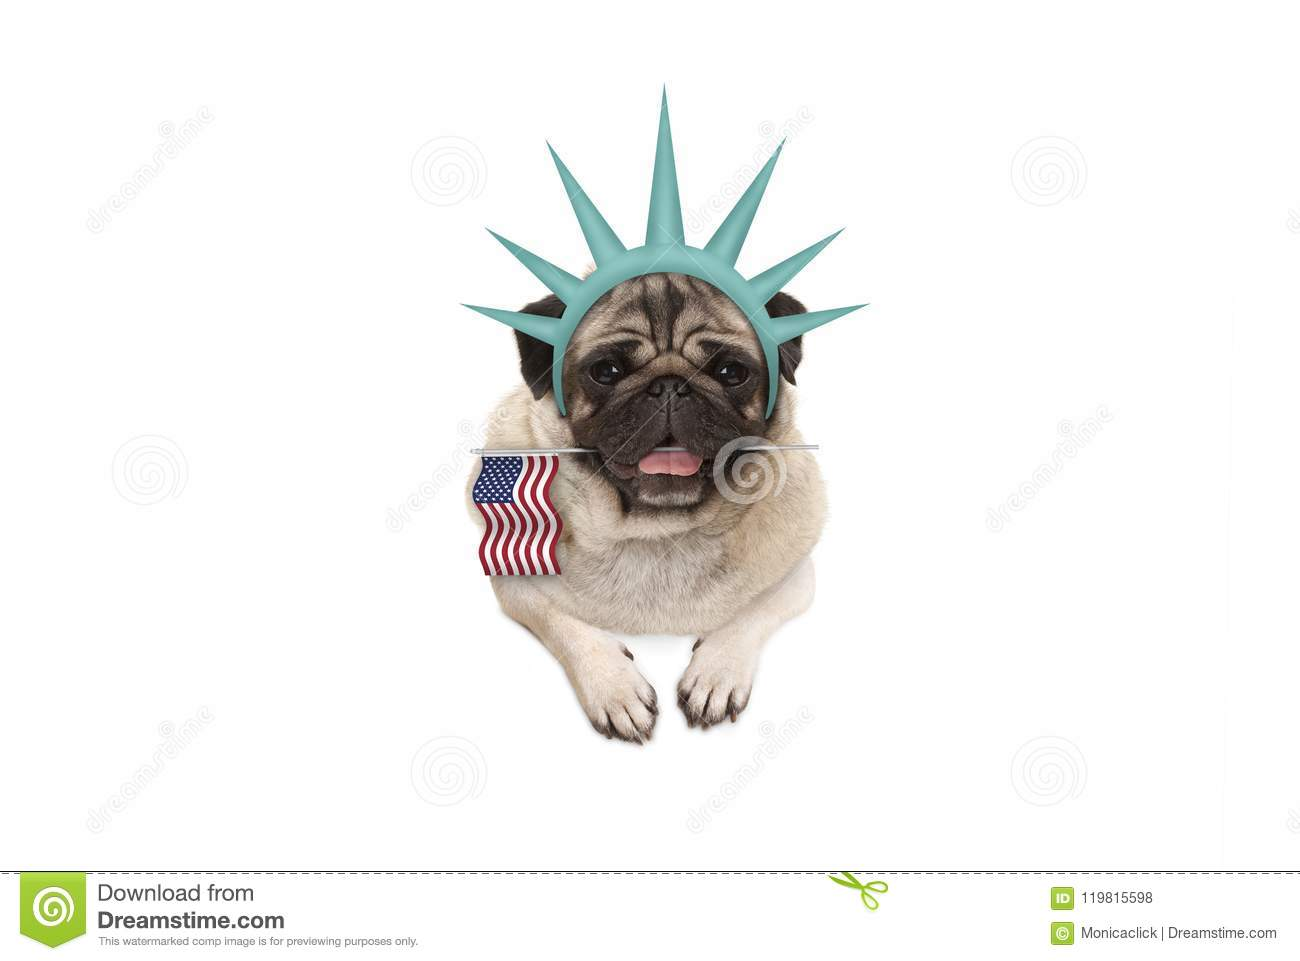 Smiling pug puppy dog holding American flag, hanging on white banner, wearing lady Liberty crown